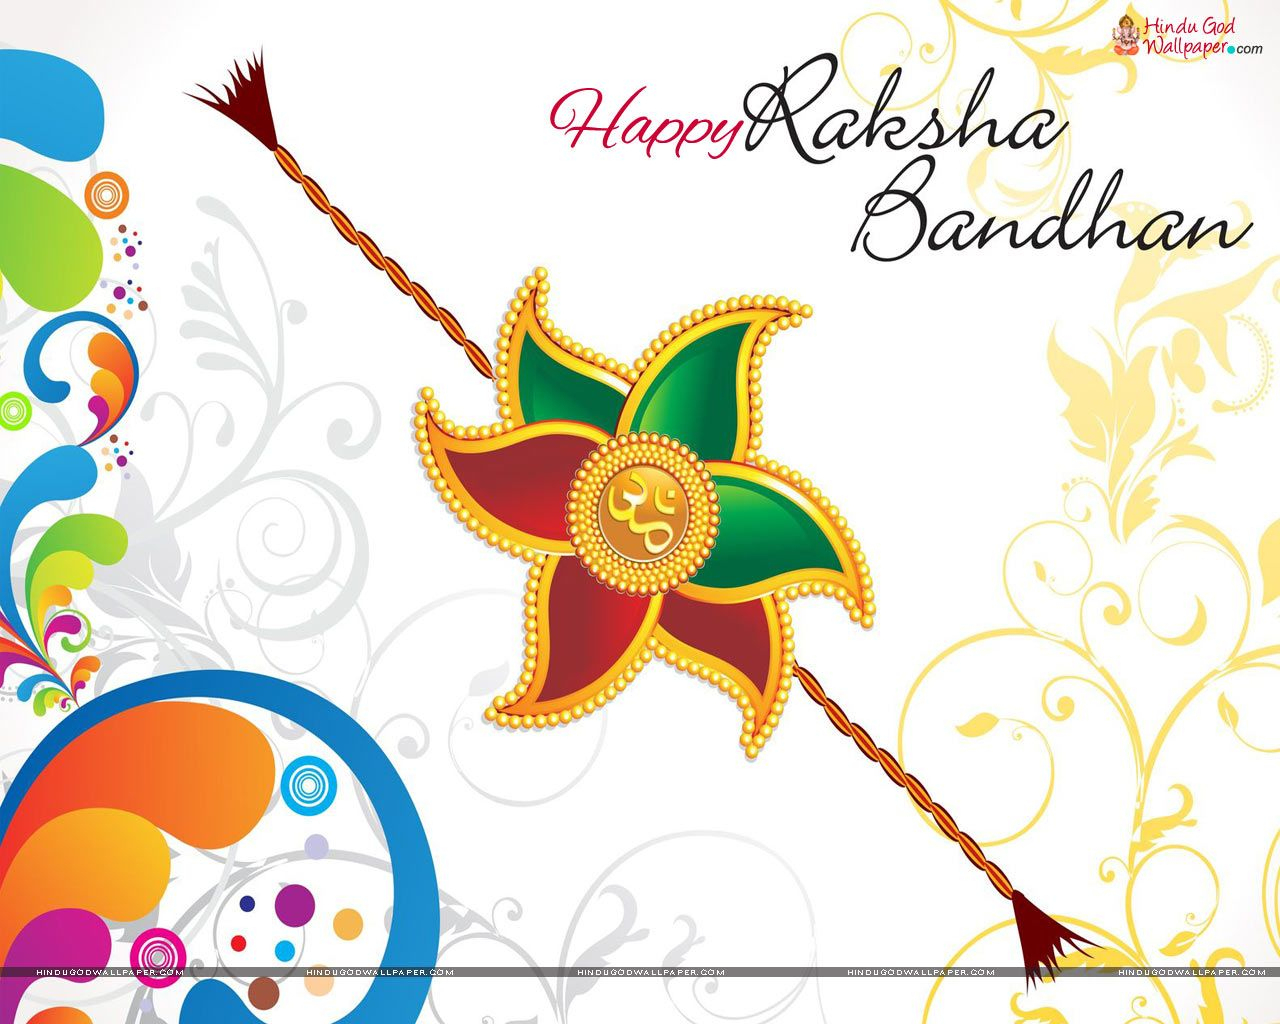 Raksha Bandhan | Happy Raksha Bandhan Wallpapers - Rakhi Wallpapers - Free Online Printable Rakhi Cards